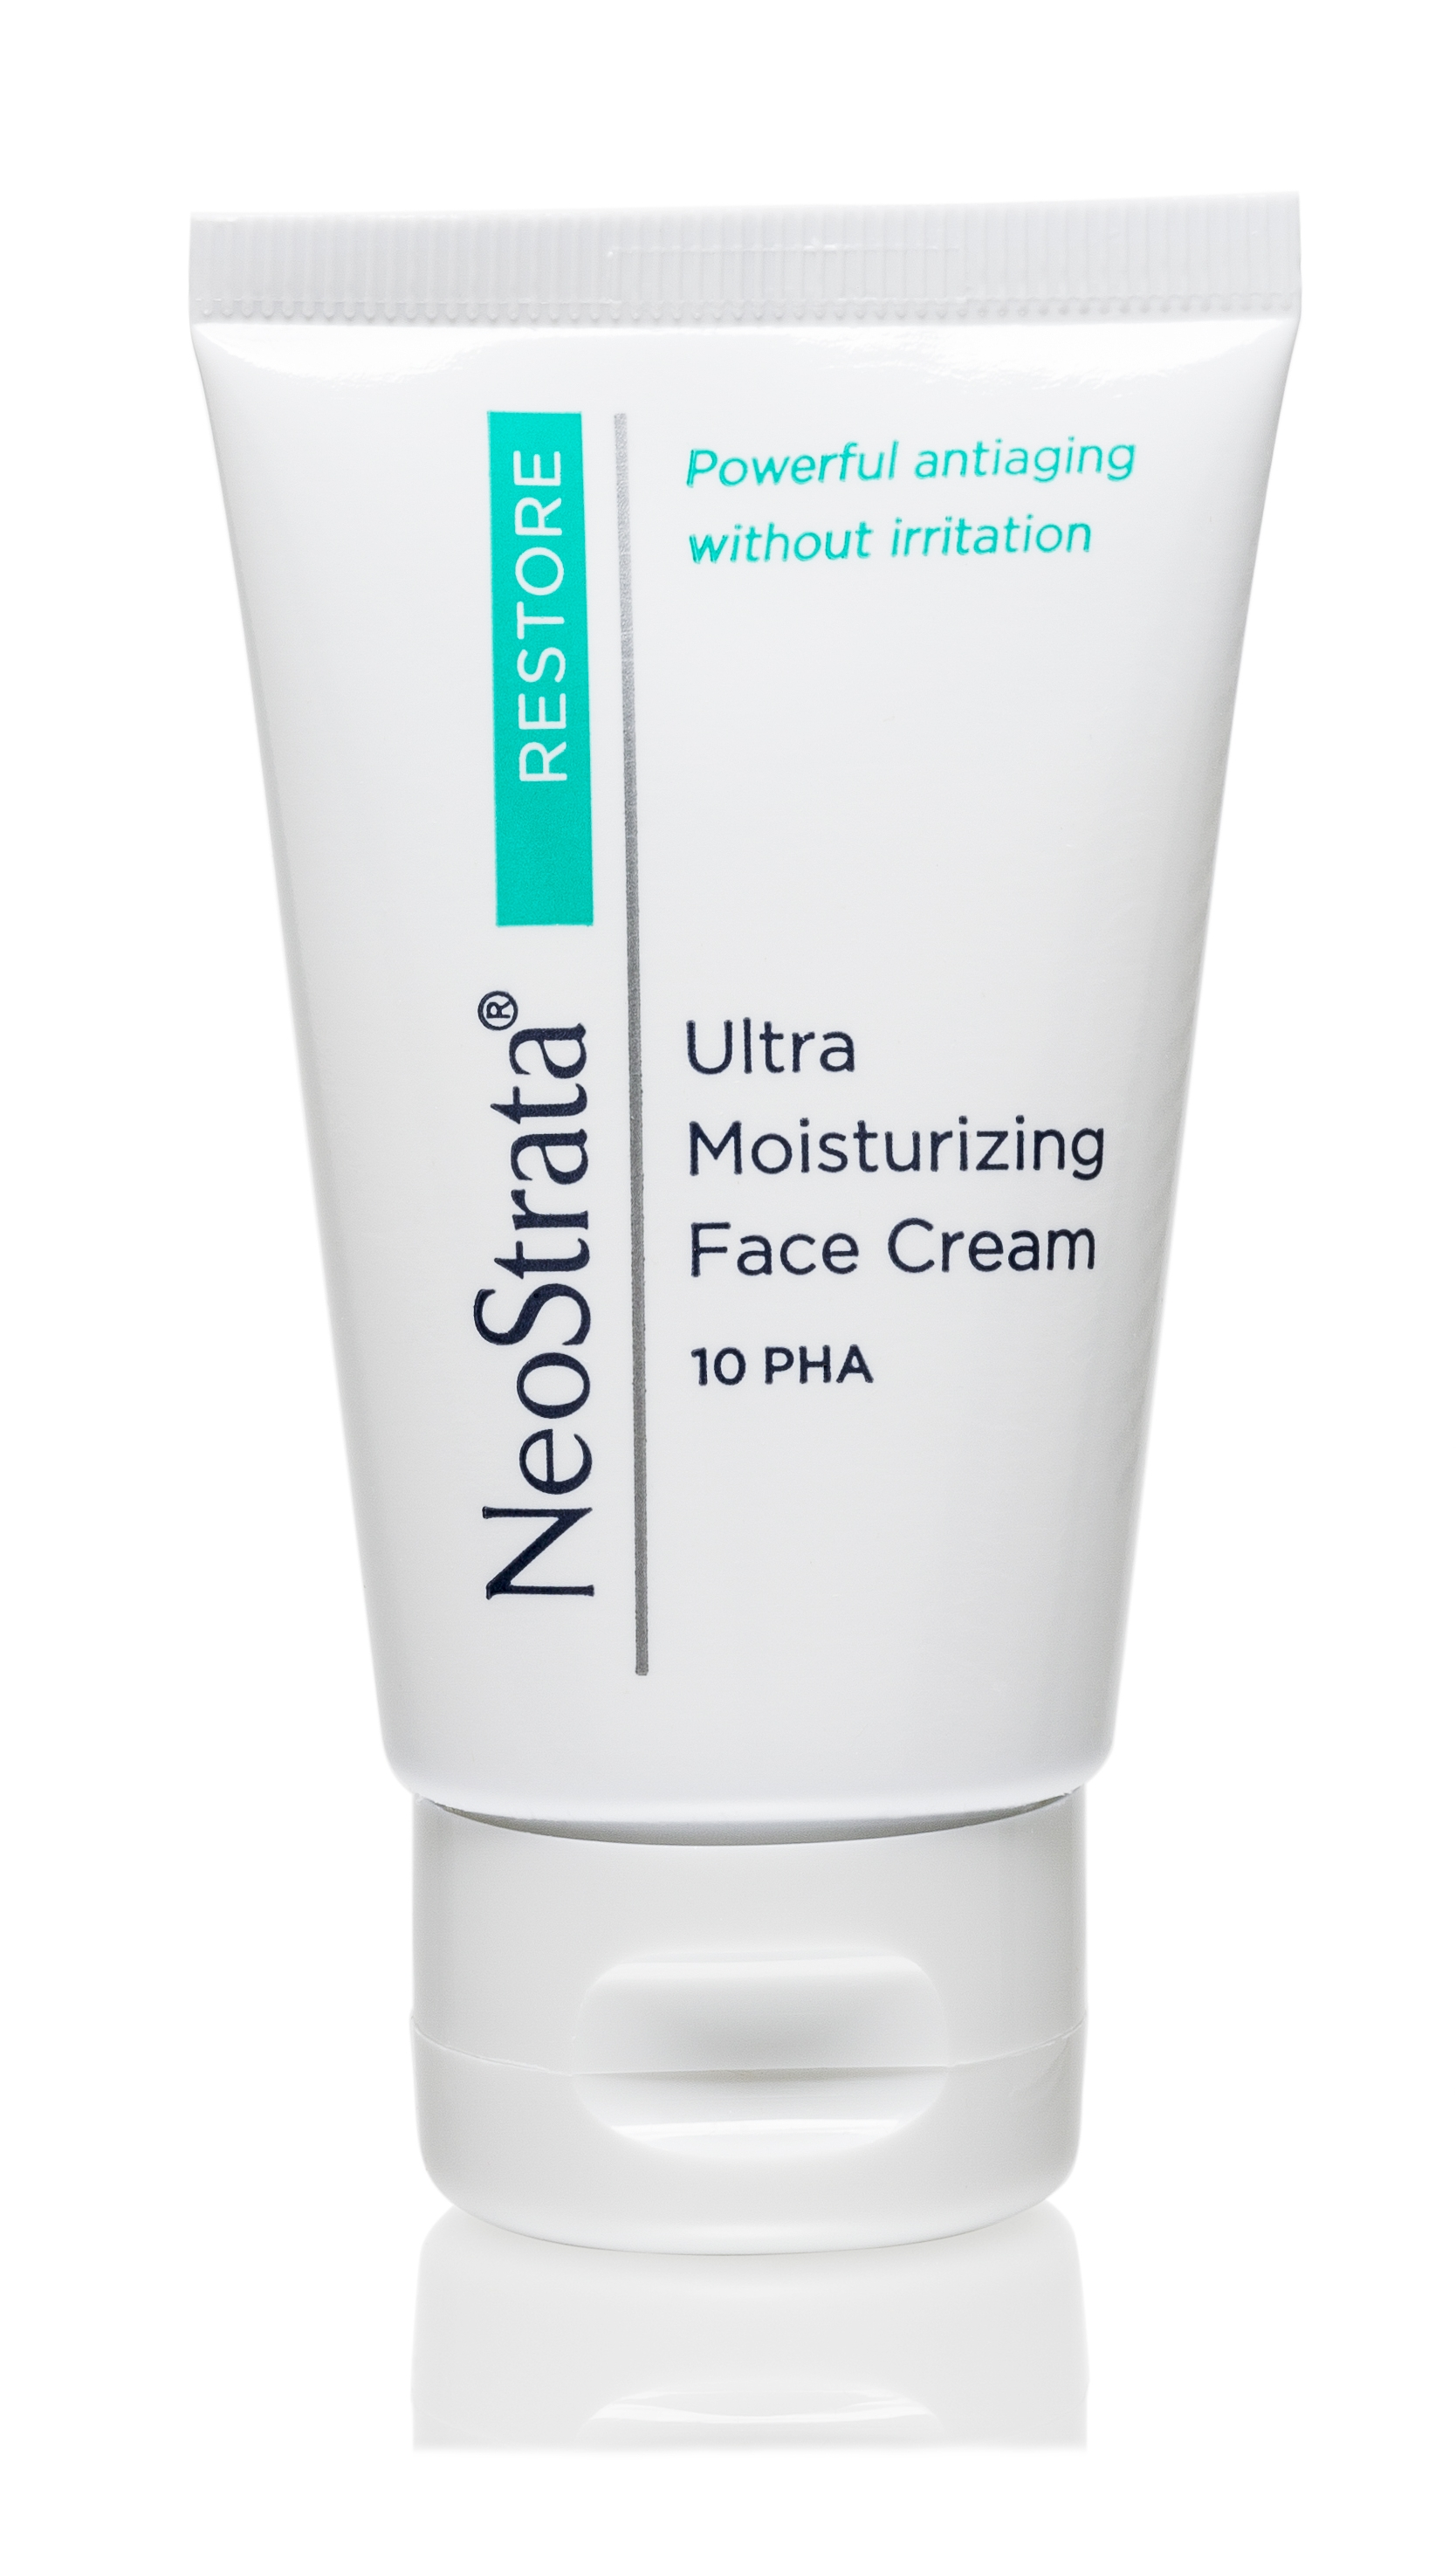 Ultra Moisturizing Face Cream